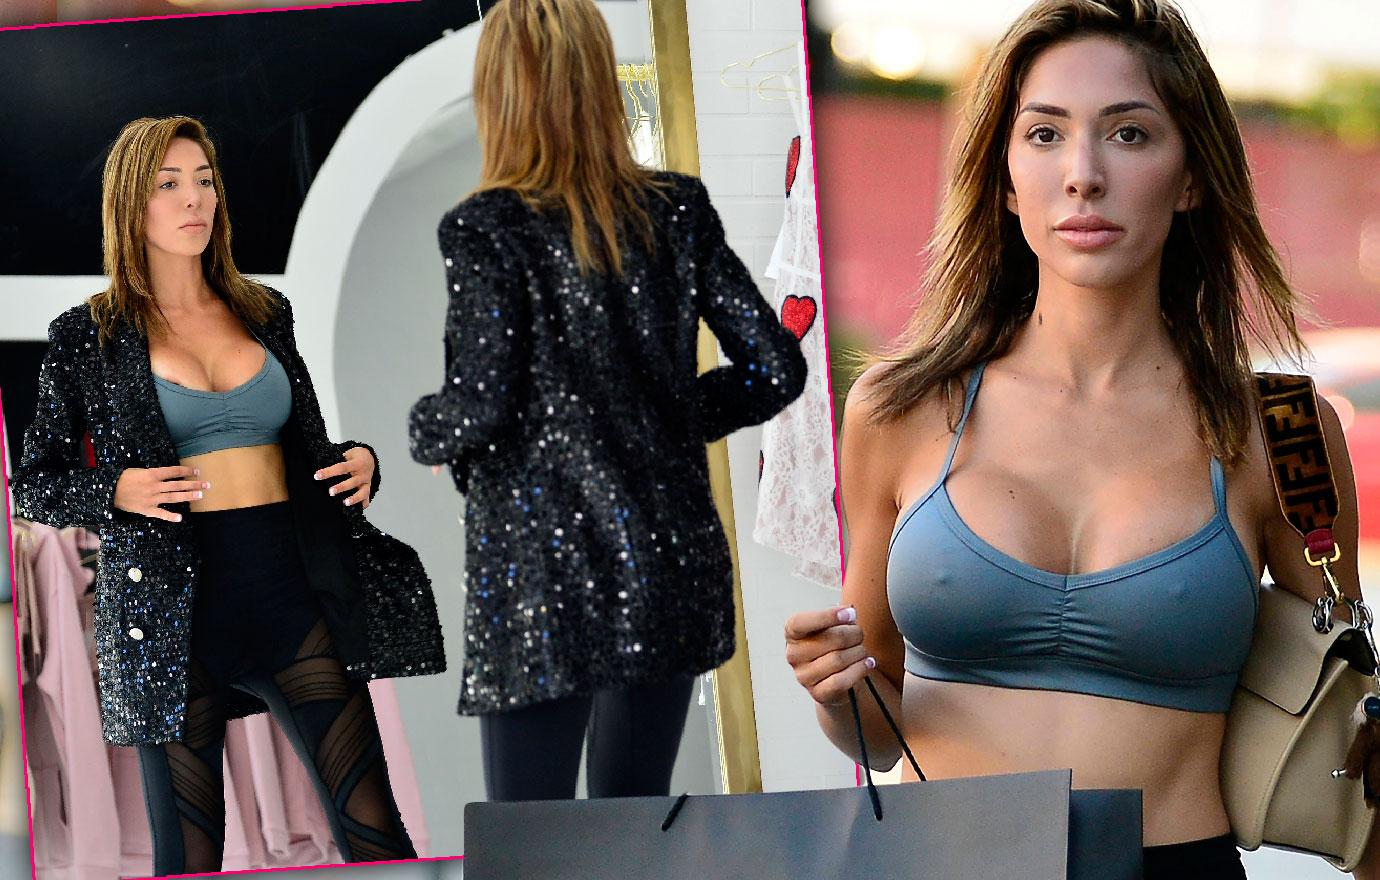 Farrah Abraham Gets New Outfit For Big Fight